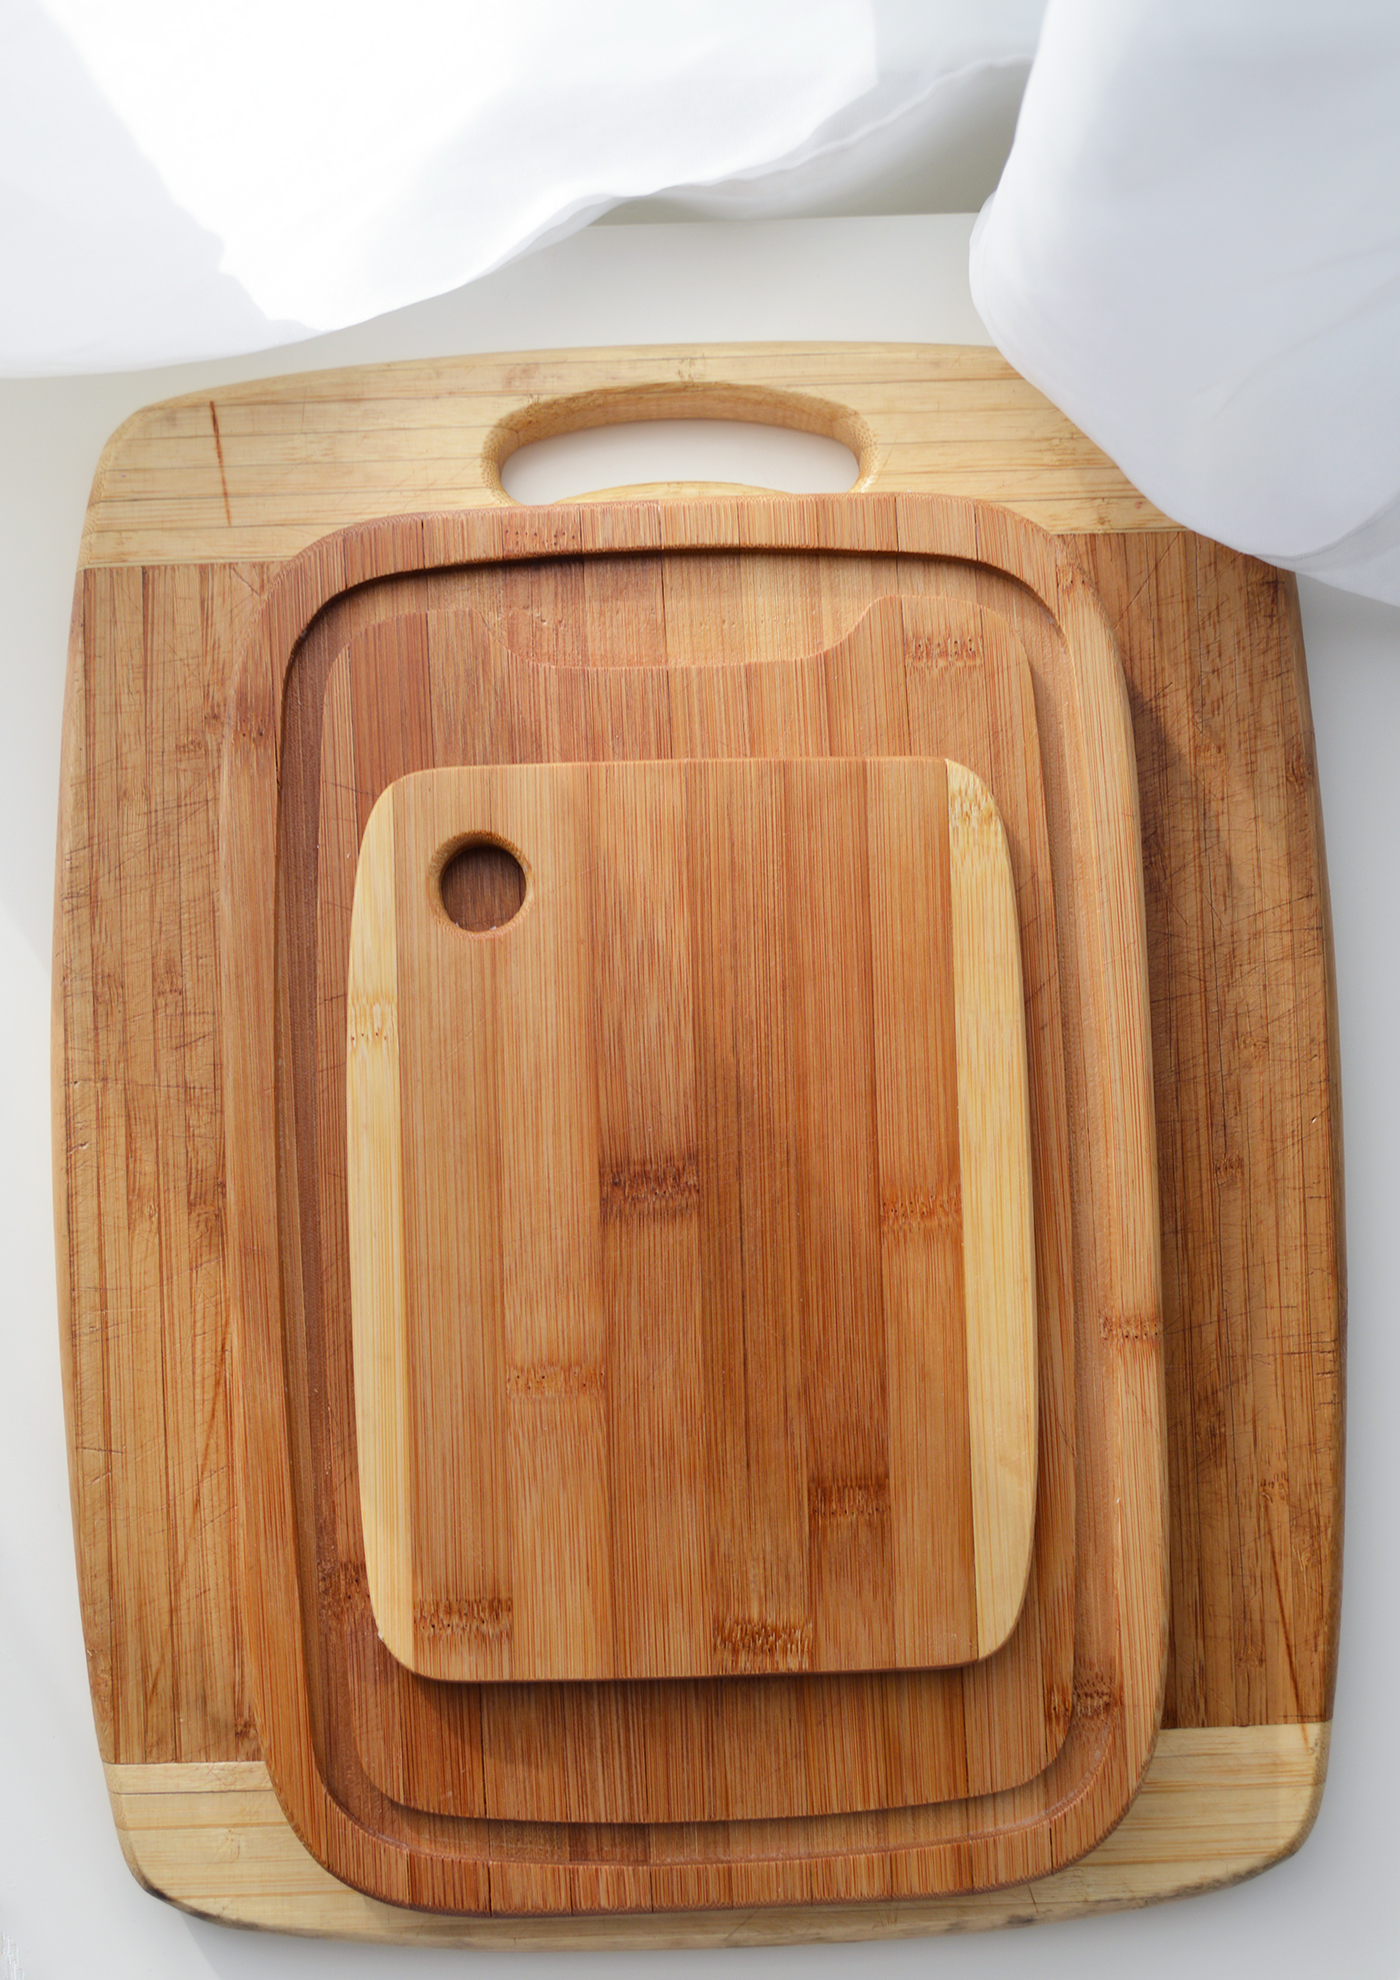 How to Restore a Wood Cutting Board